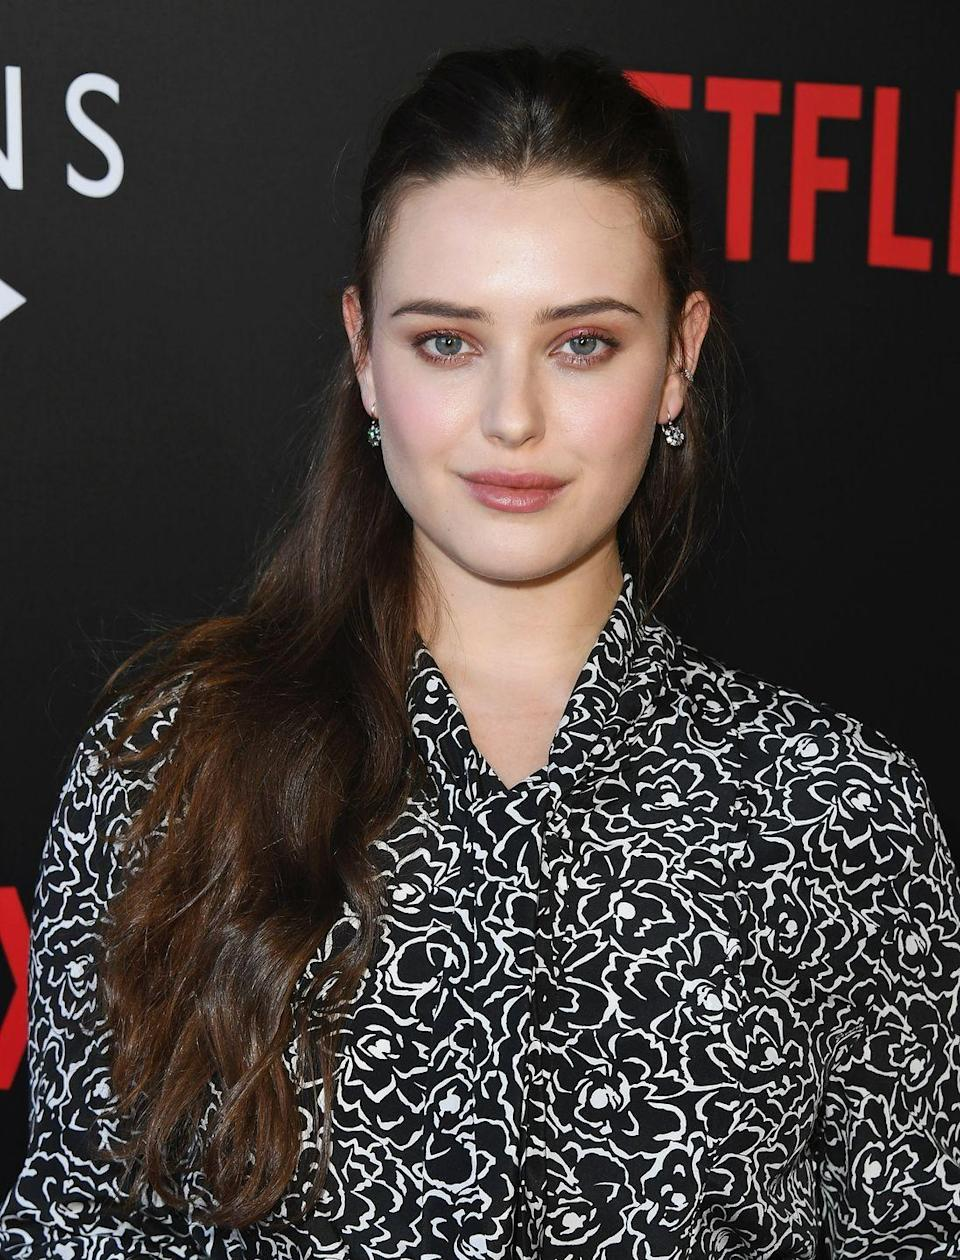 """<p>Spoiler alert! In <em>Avengers: Endgame</em>, Katherine Langford filmed a scene with Robert Downey Jr. that was meant to be the grown-up version of his daughter coming to him before his death. However, test audiences weren't fans of the exchange, <a href=""""https://collider.com/avengers-endgame-katherine-langford-interview/"""" rel=""""nofollow noopener"""" target=""""_blank"""" data-ylk=""""slk:so it was cut"""" class=""""link rapid-noclick-resp"""">so it was cut</a>. </p>"""